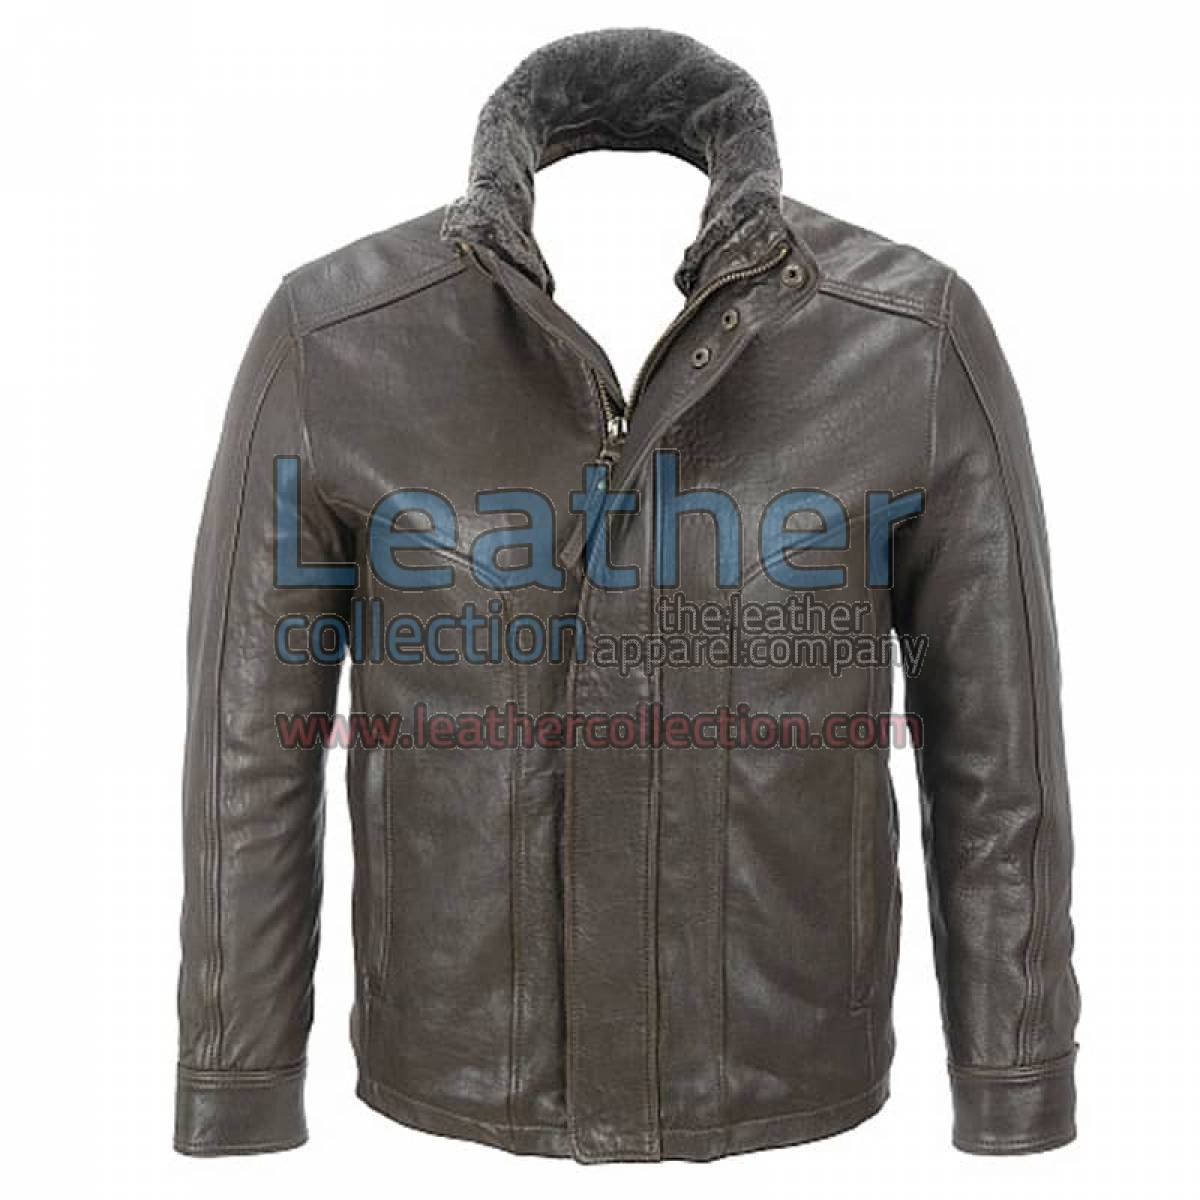 Rugged Leather Jacket with Removable Shearling Collar